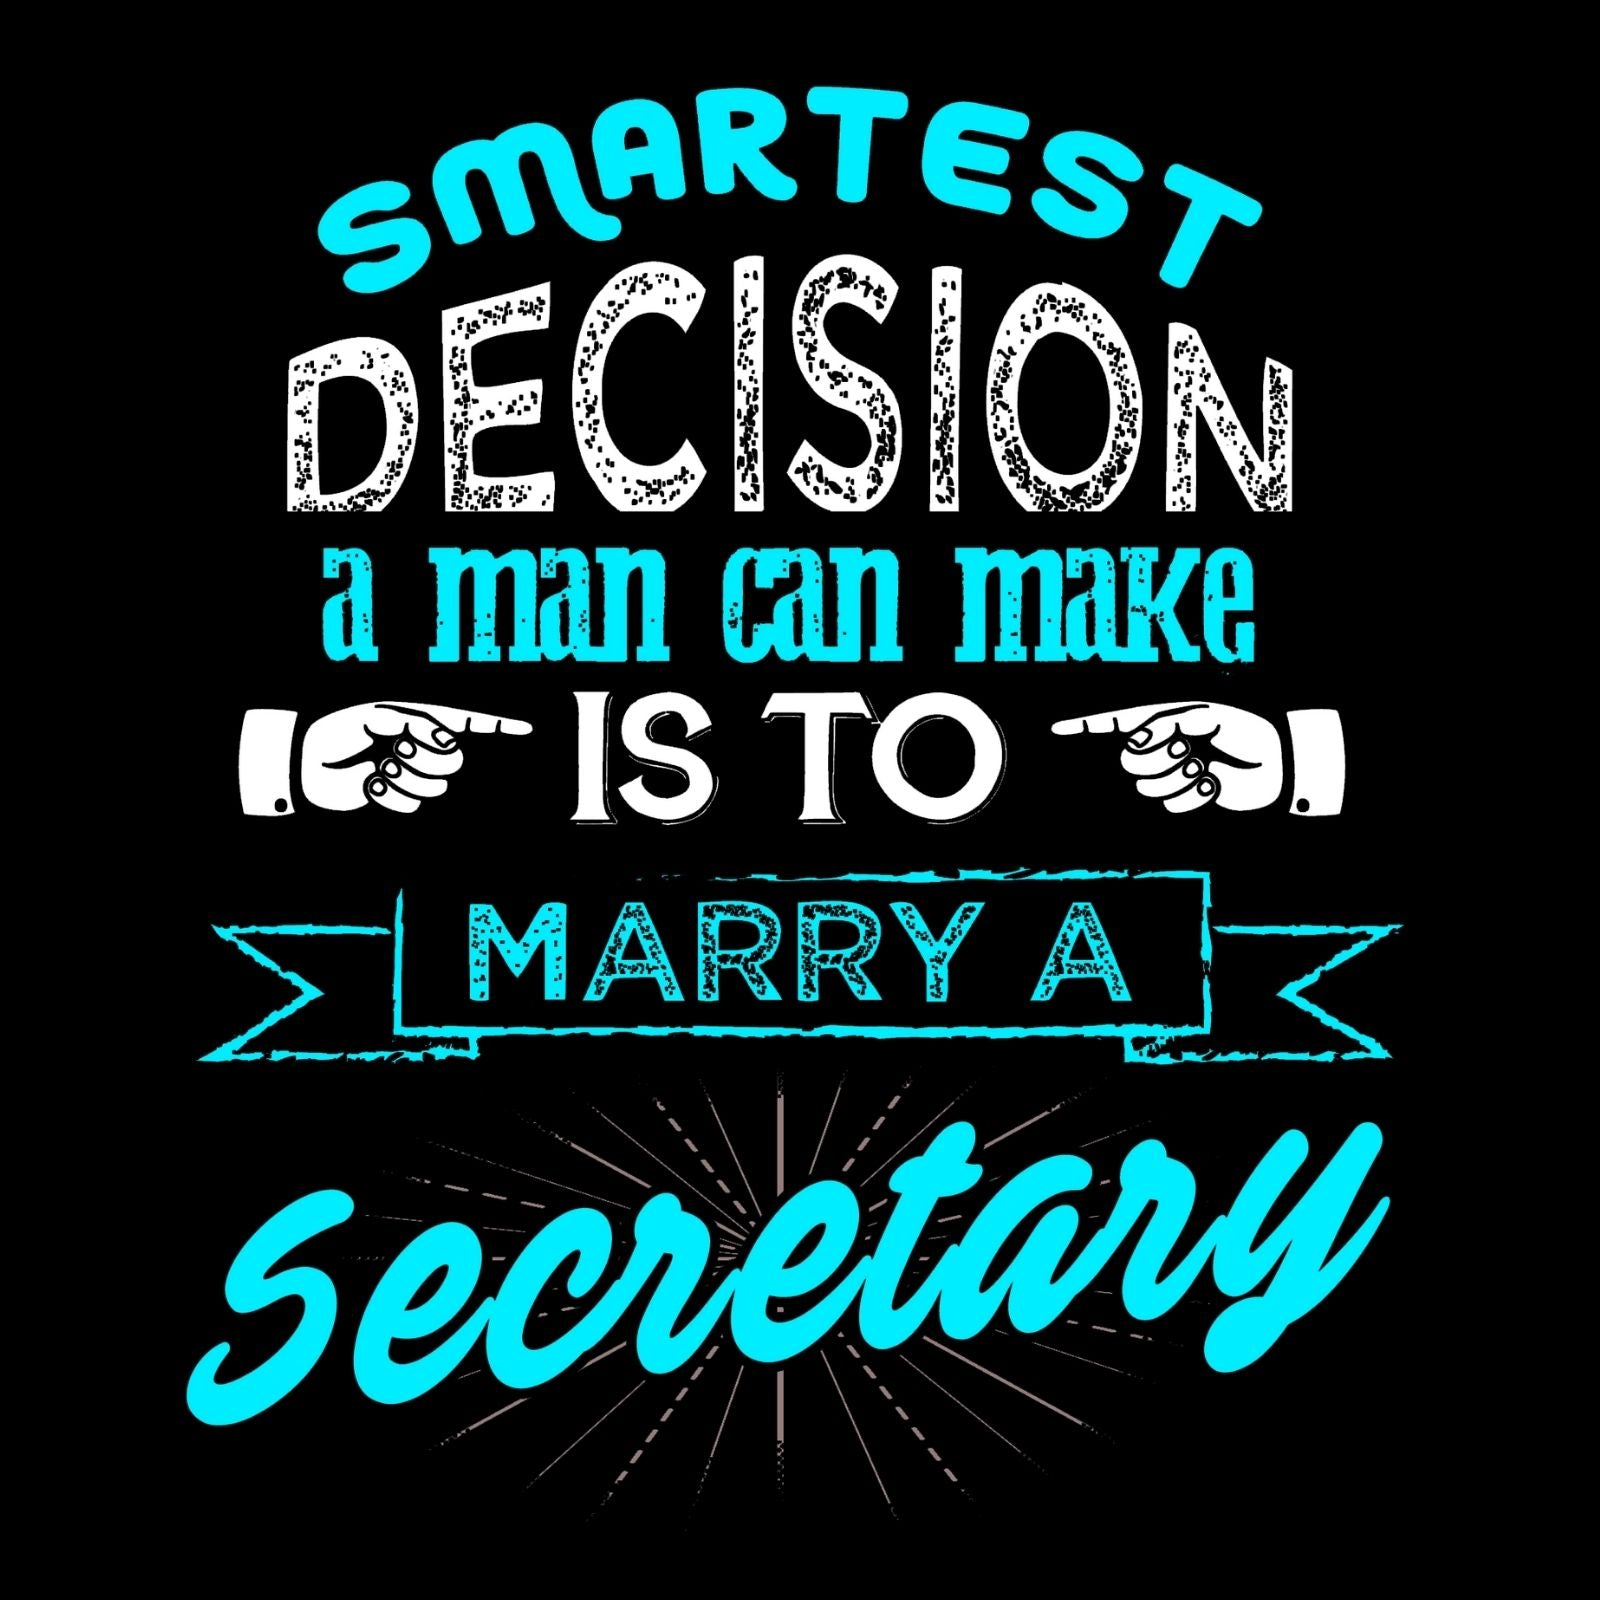 Smartest Decision A Man Can Make Is To Marry A Secretary - Bastard Graphics